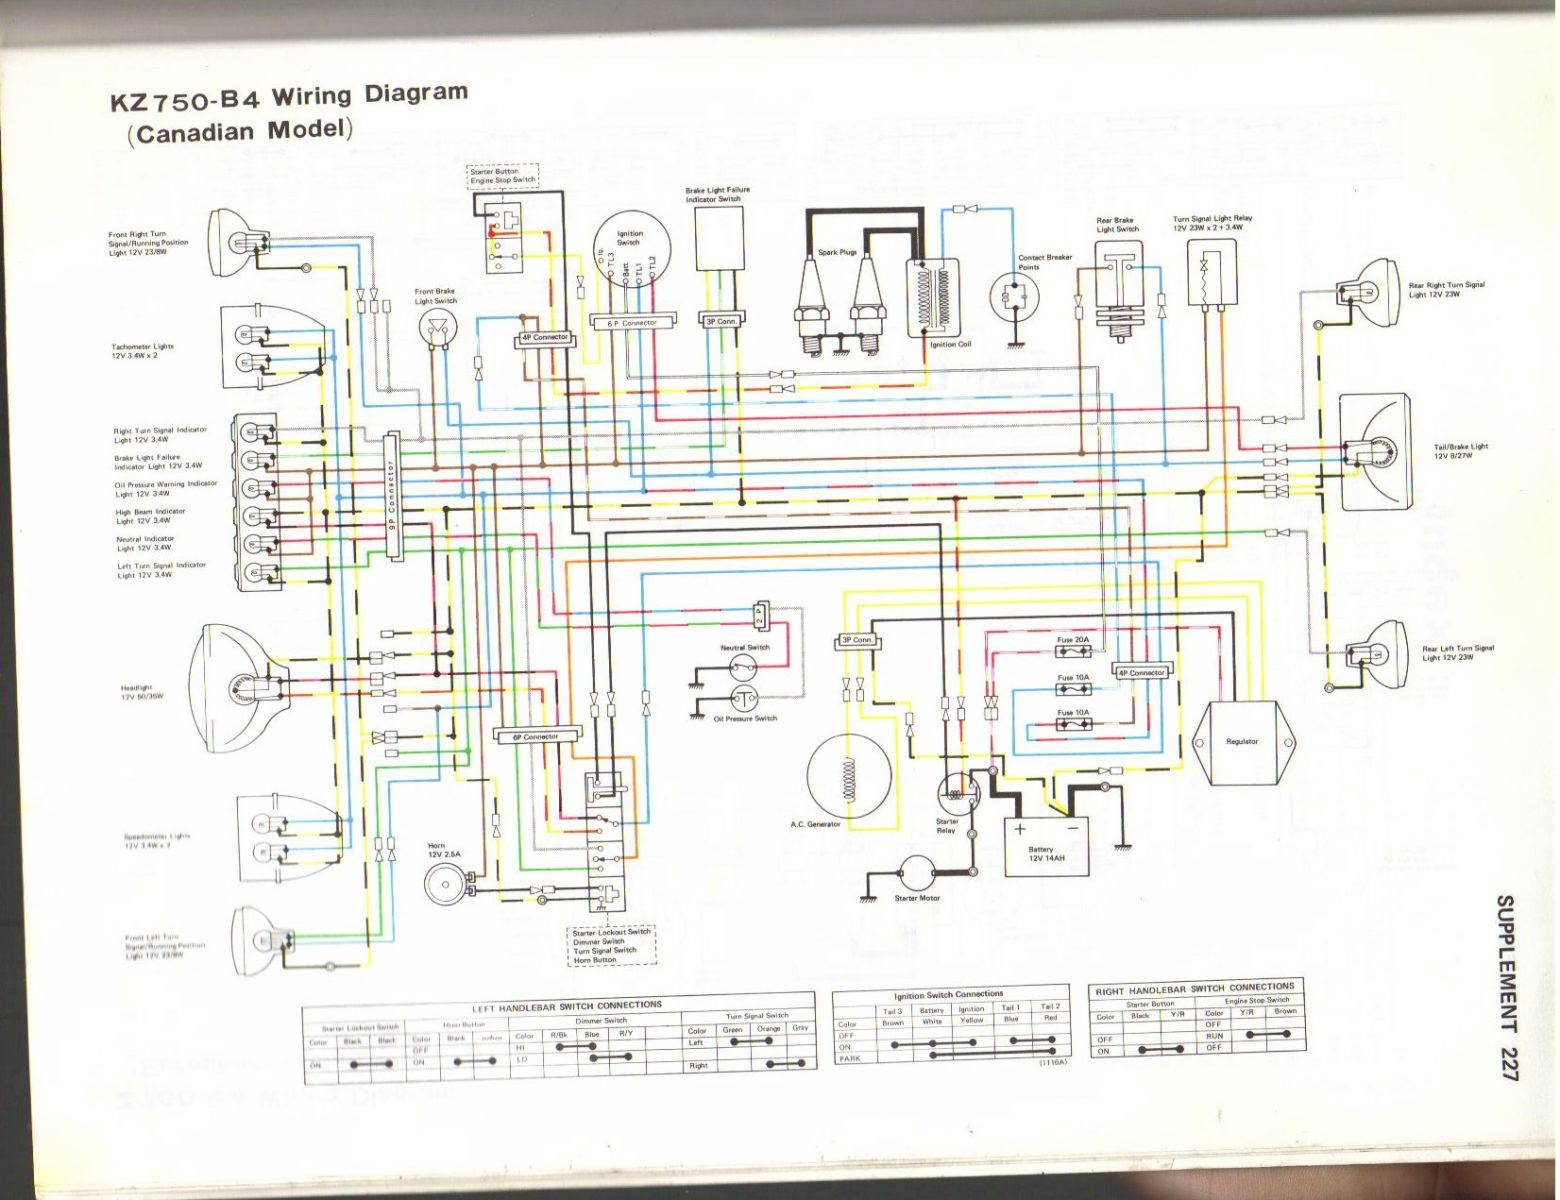 kz750 h1 wiring diagram 1976 kz 750 need help! wiring harness - kzrider forum ...